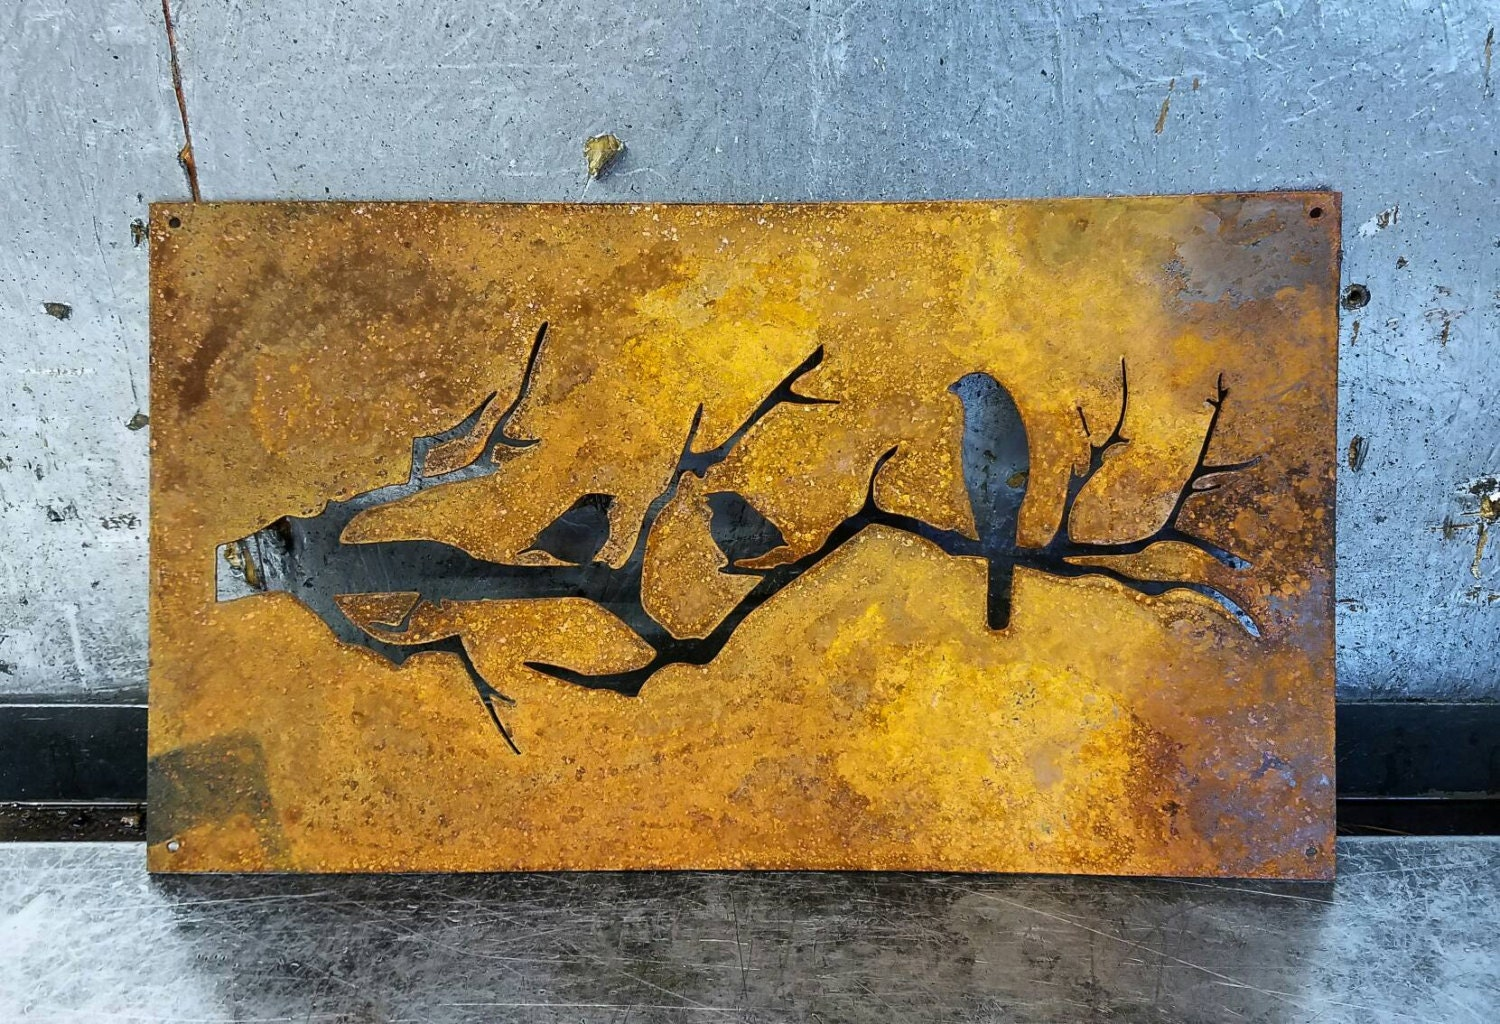 Birds On A Branch Silhouette Cut Out Of A Sheet Of Metal